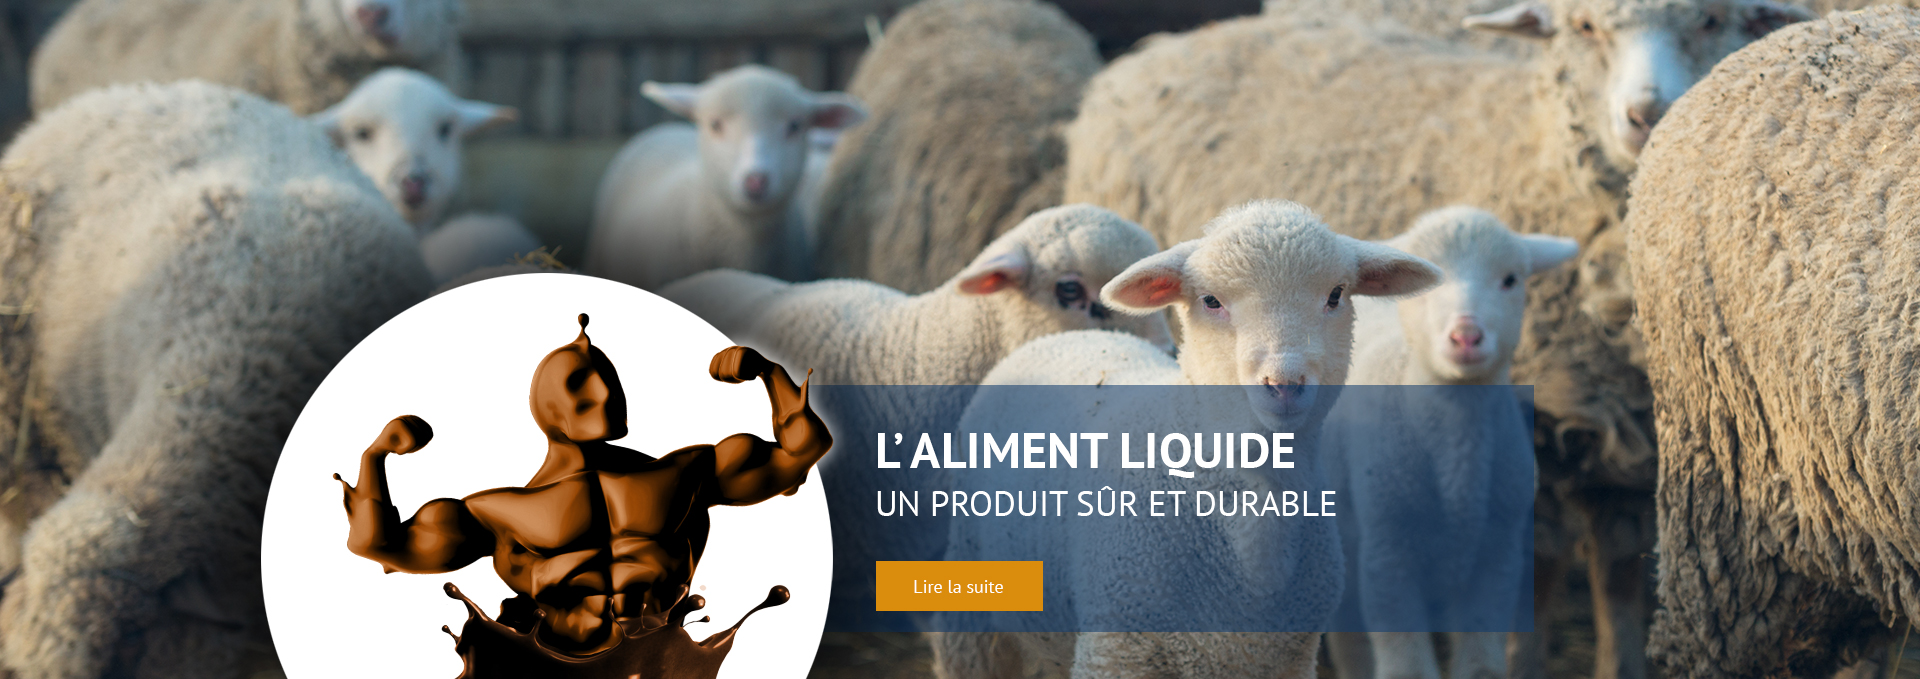 Troupeau de moutons au champ